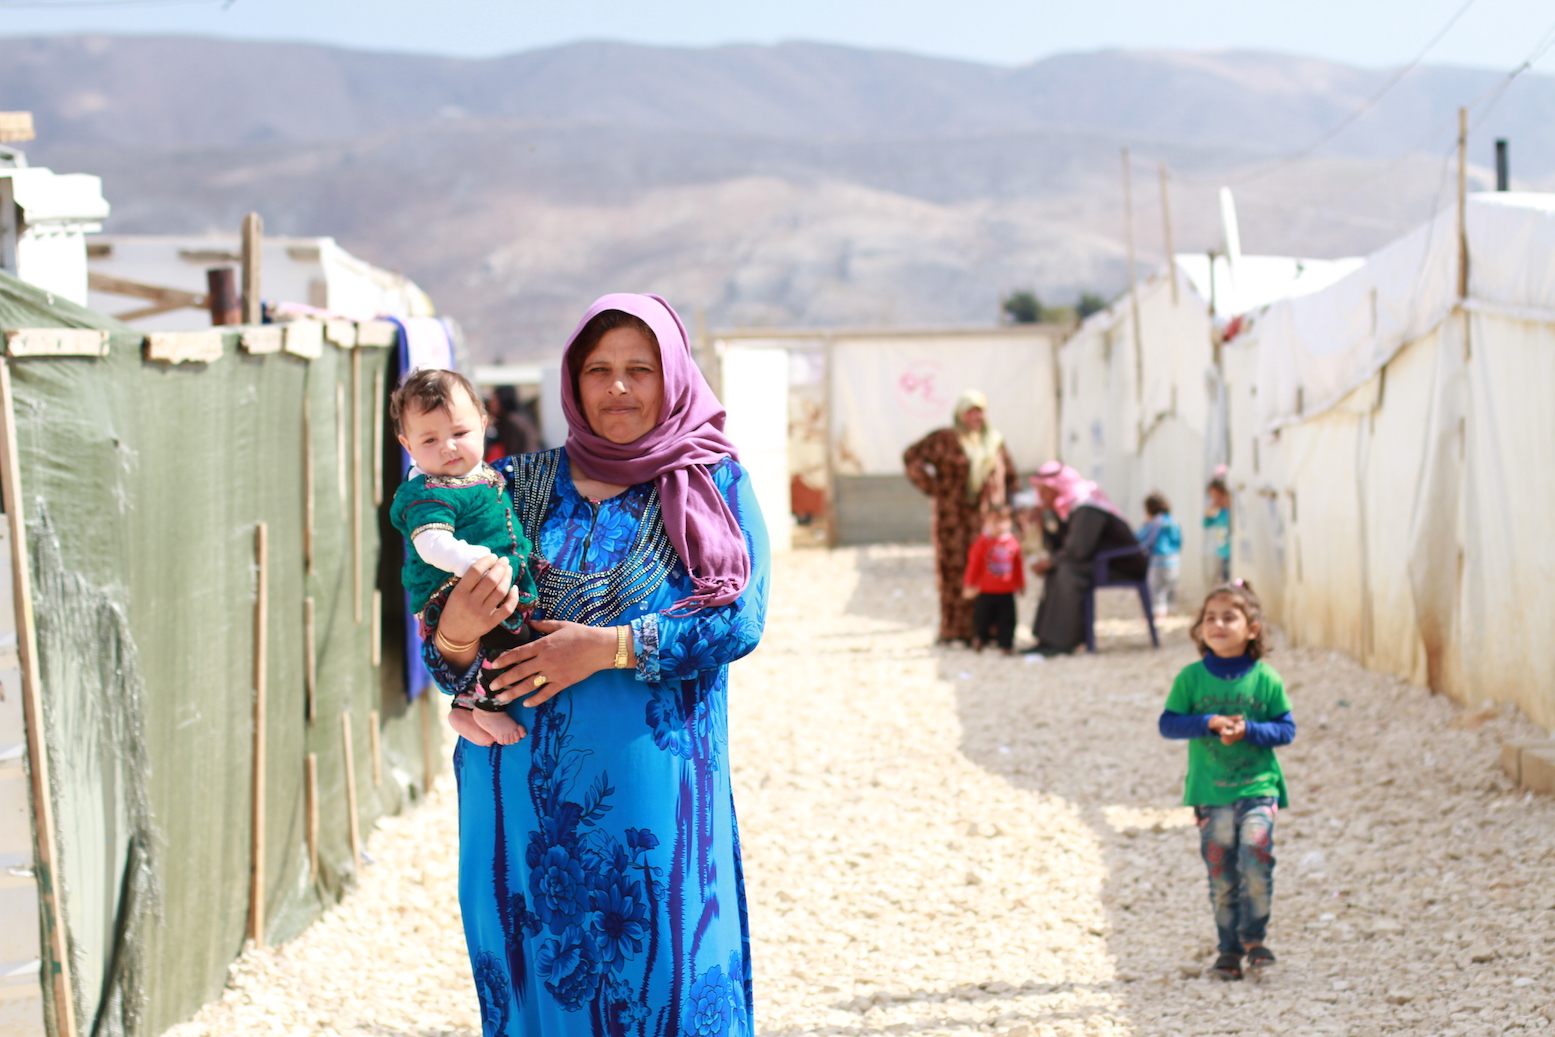 A refugee woman holds her child in an informal settlement in the town of Dalhamiye in Lebanon's Bekaa. The informal settlement, situated between Mount Lebanon to the West and the Anti-Lebanon Mountains to the East, is home to 70 Syrian families most of whom are originally from Homs.